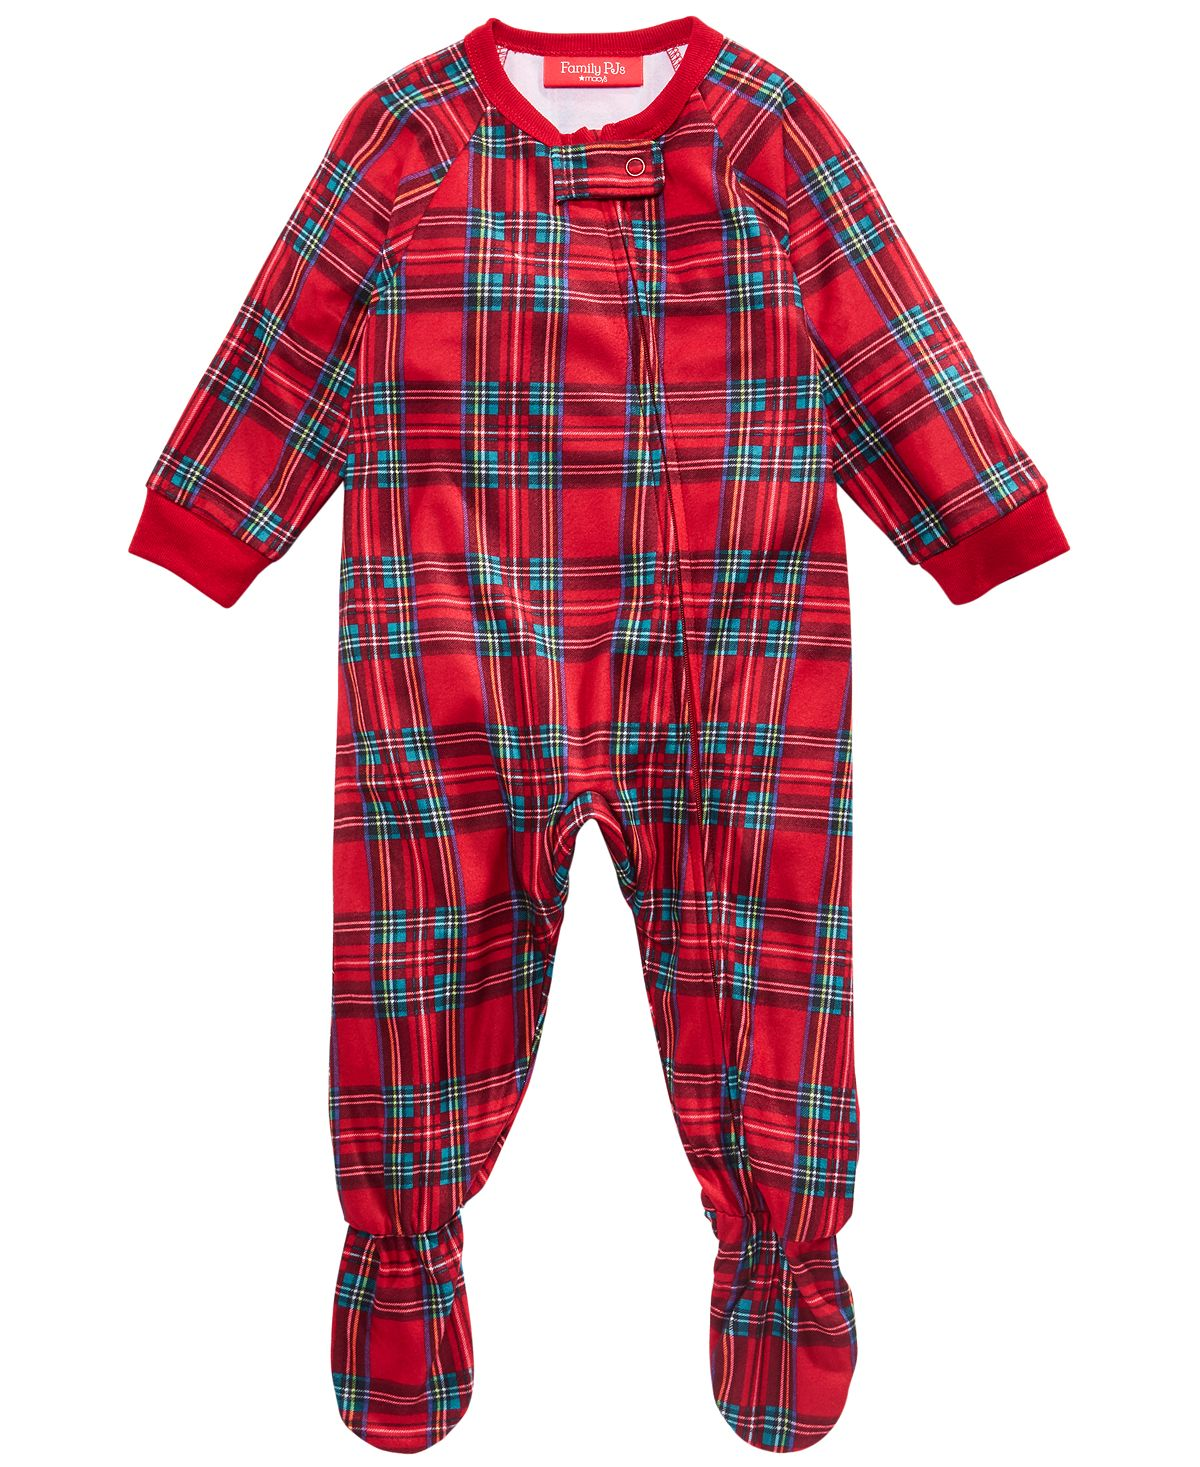 Matching Baby Brinkley Plaid Family Pajamas